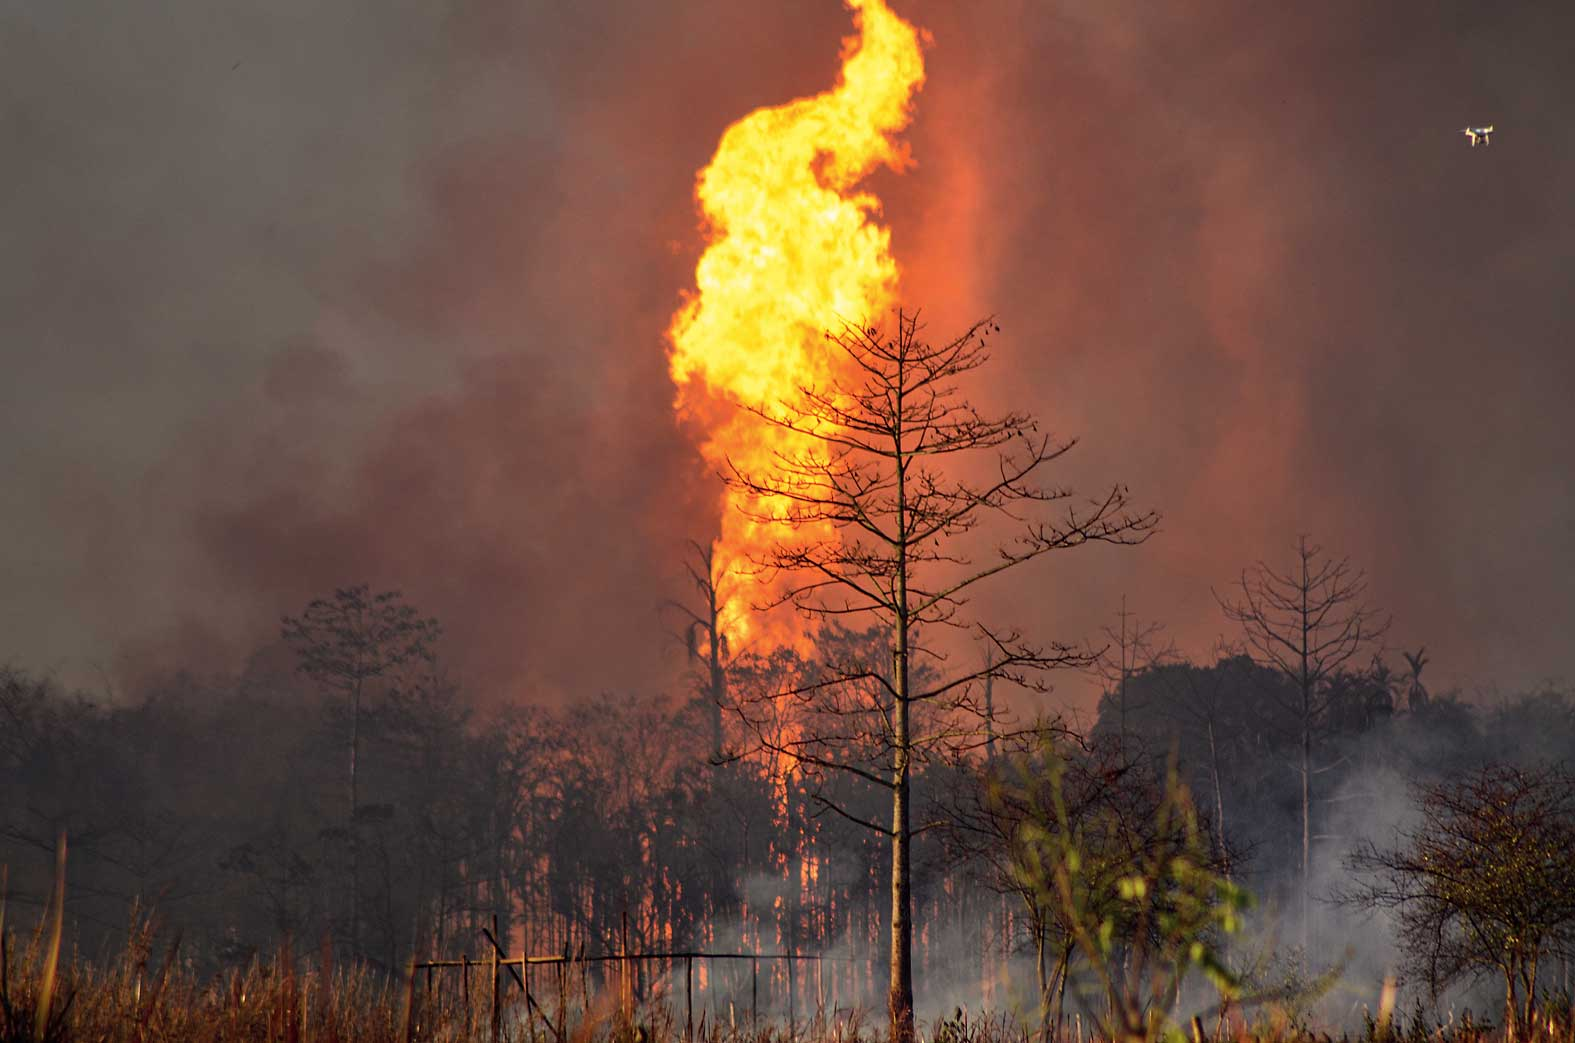 Assam oil well fire burning for 150 days becomes India's longest gas blaze